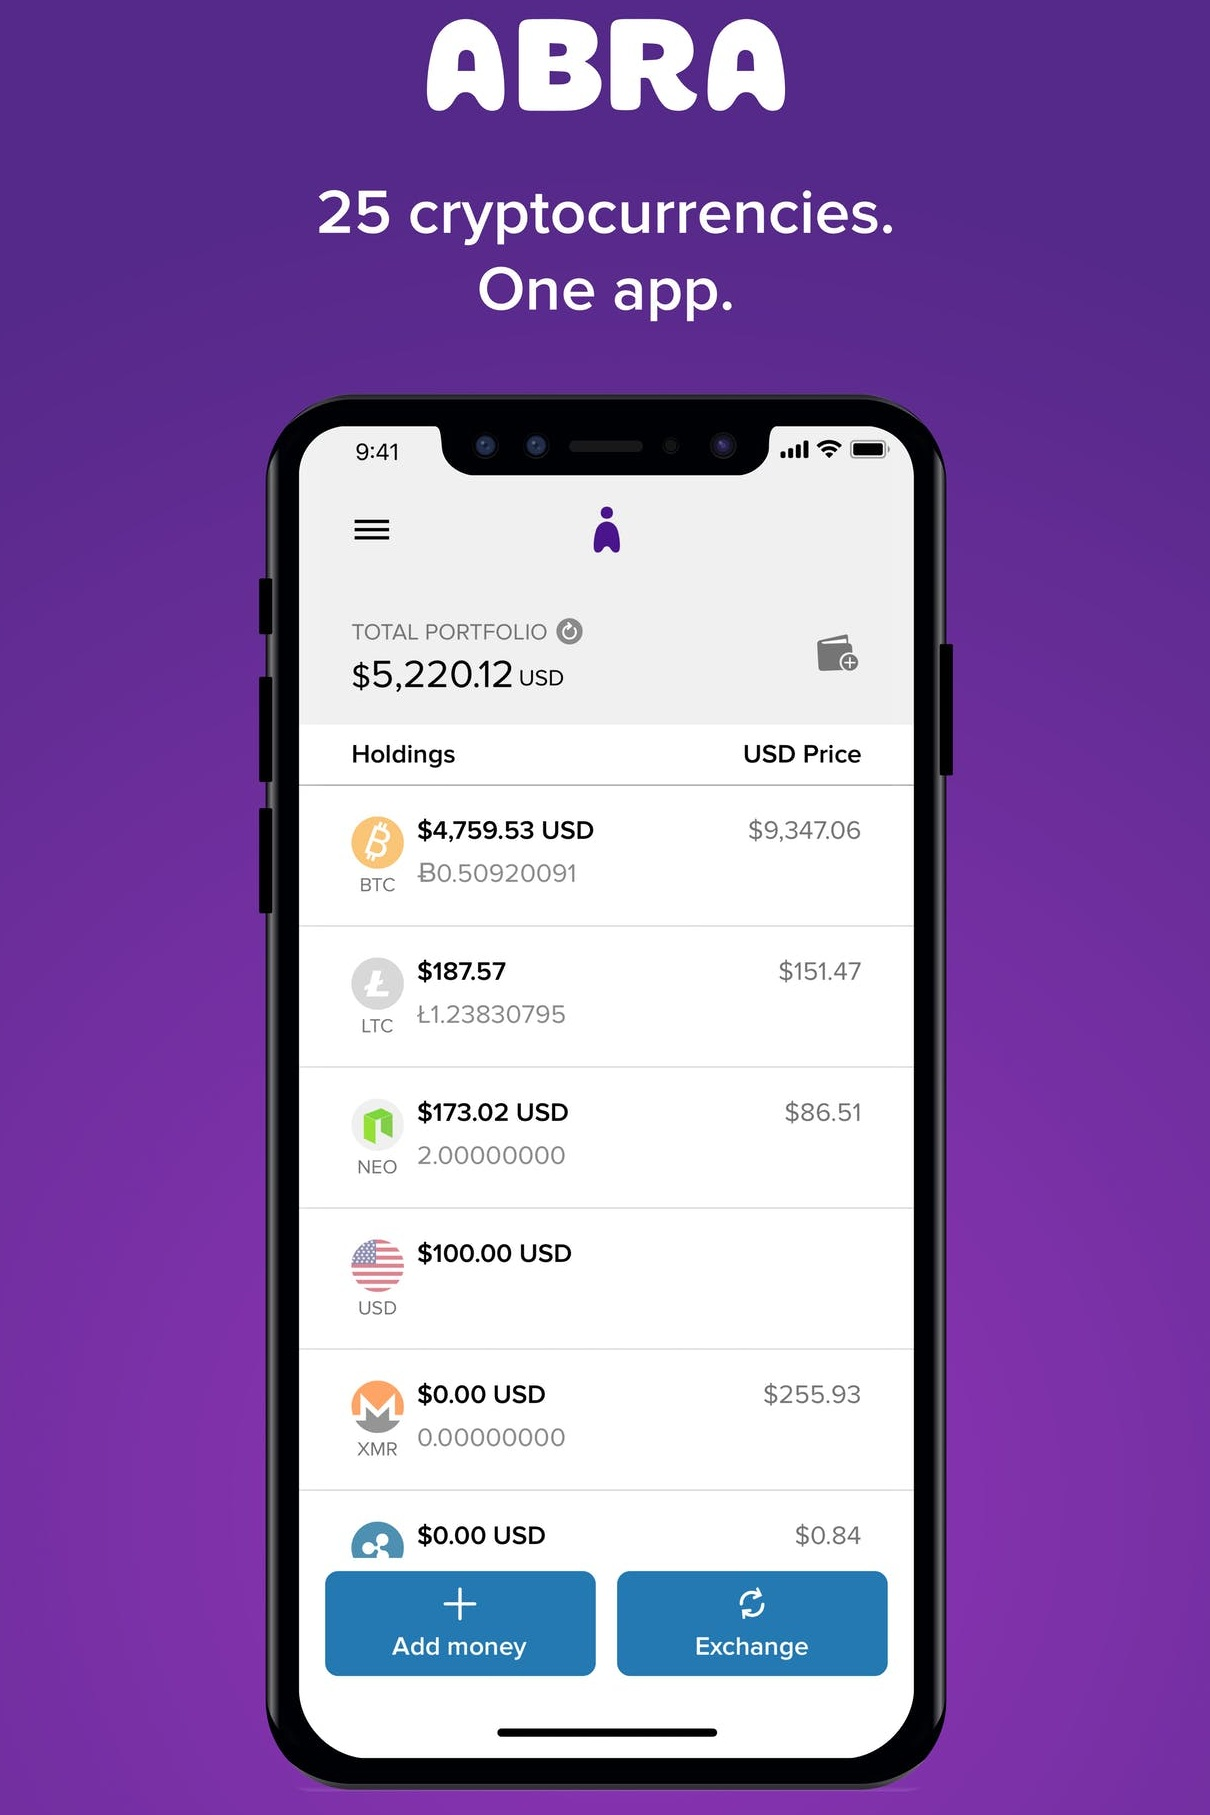 Abra is the only app that allows you to buy, store and invest in 30 cryptocurrencies all in one place. Download the app, set up the wallet, make a minimum $5 deposit and get $25 in bitcoin deposited to your account: https://www.abra.com/datadash